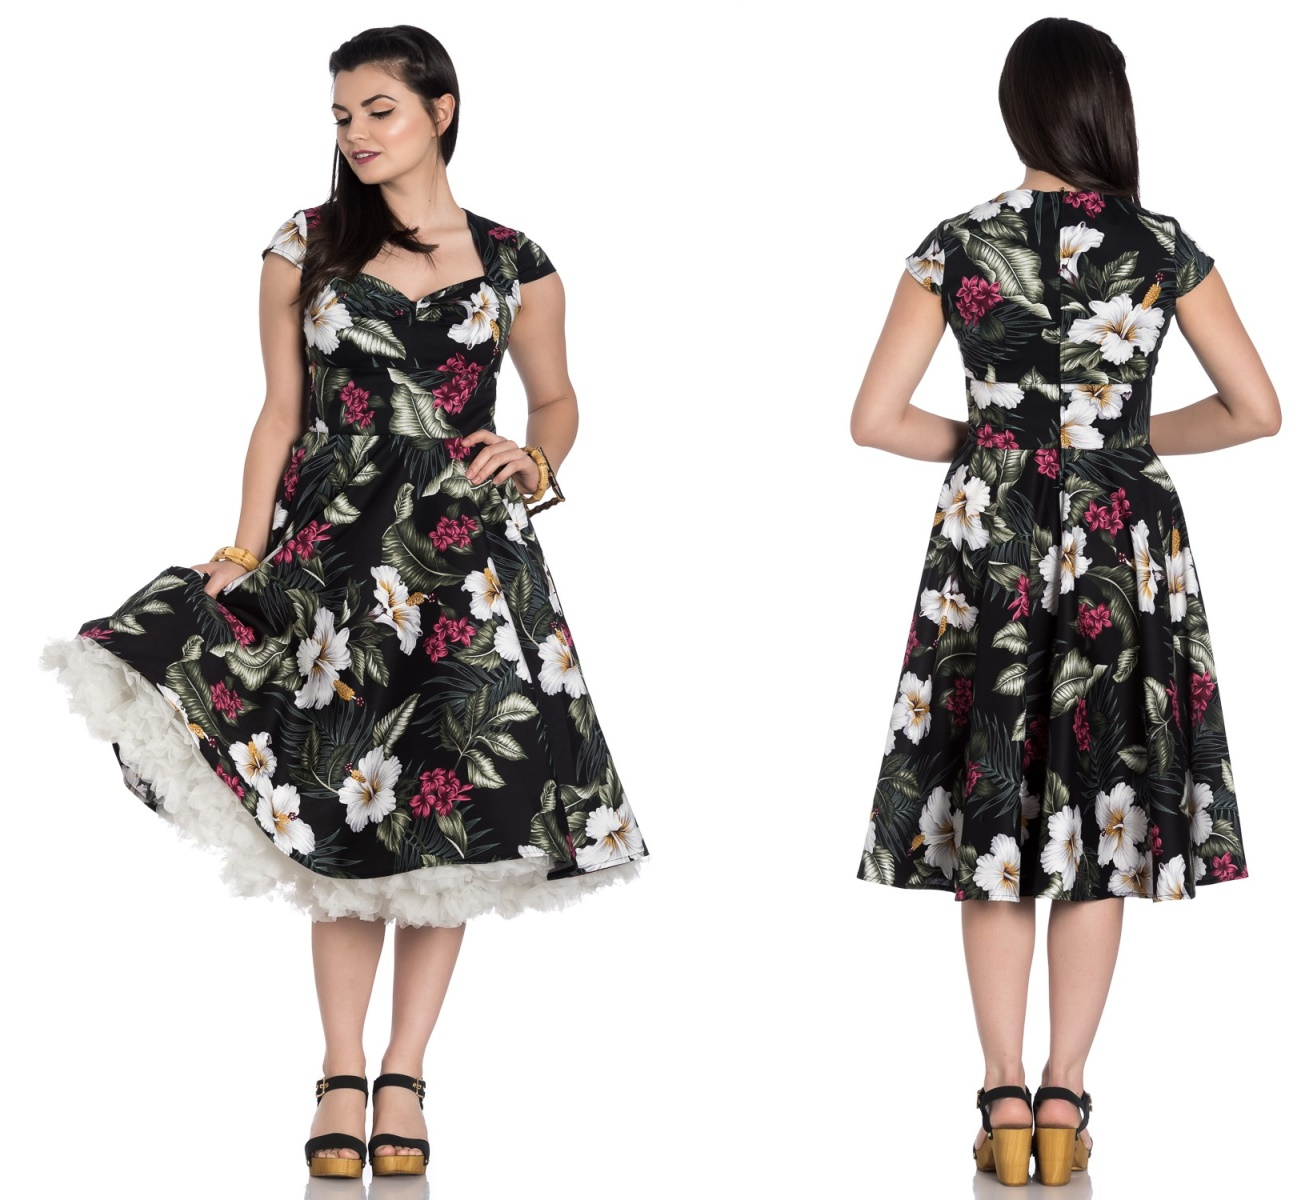 Kalei Dress Rock n Roll Kleid Blumenmuster Hellbunny - Hellbunny ...